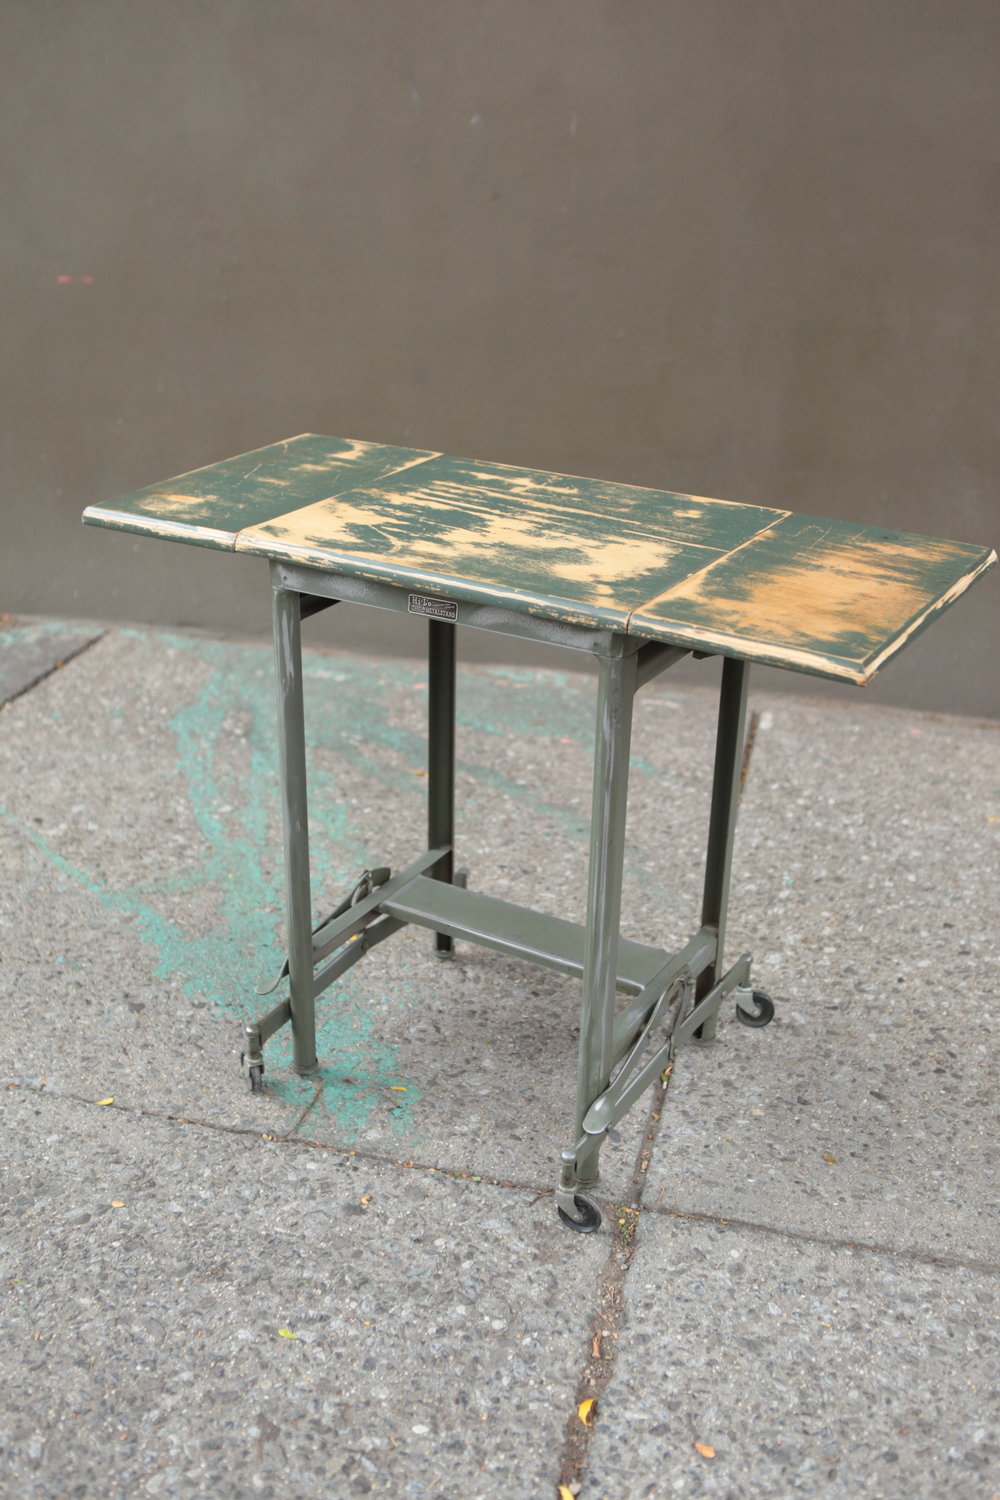 sold ! Reclaimed wood & metal stand $150